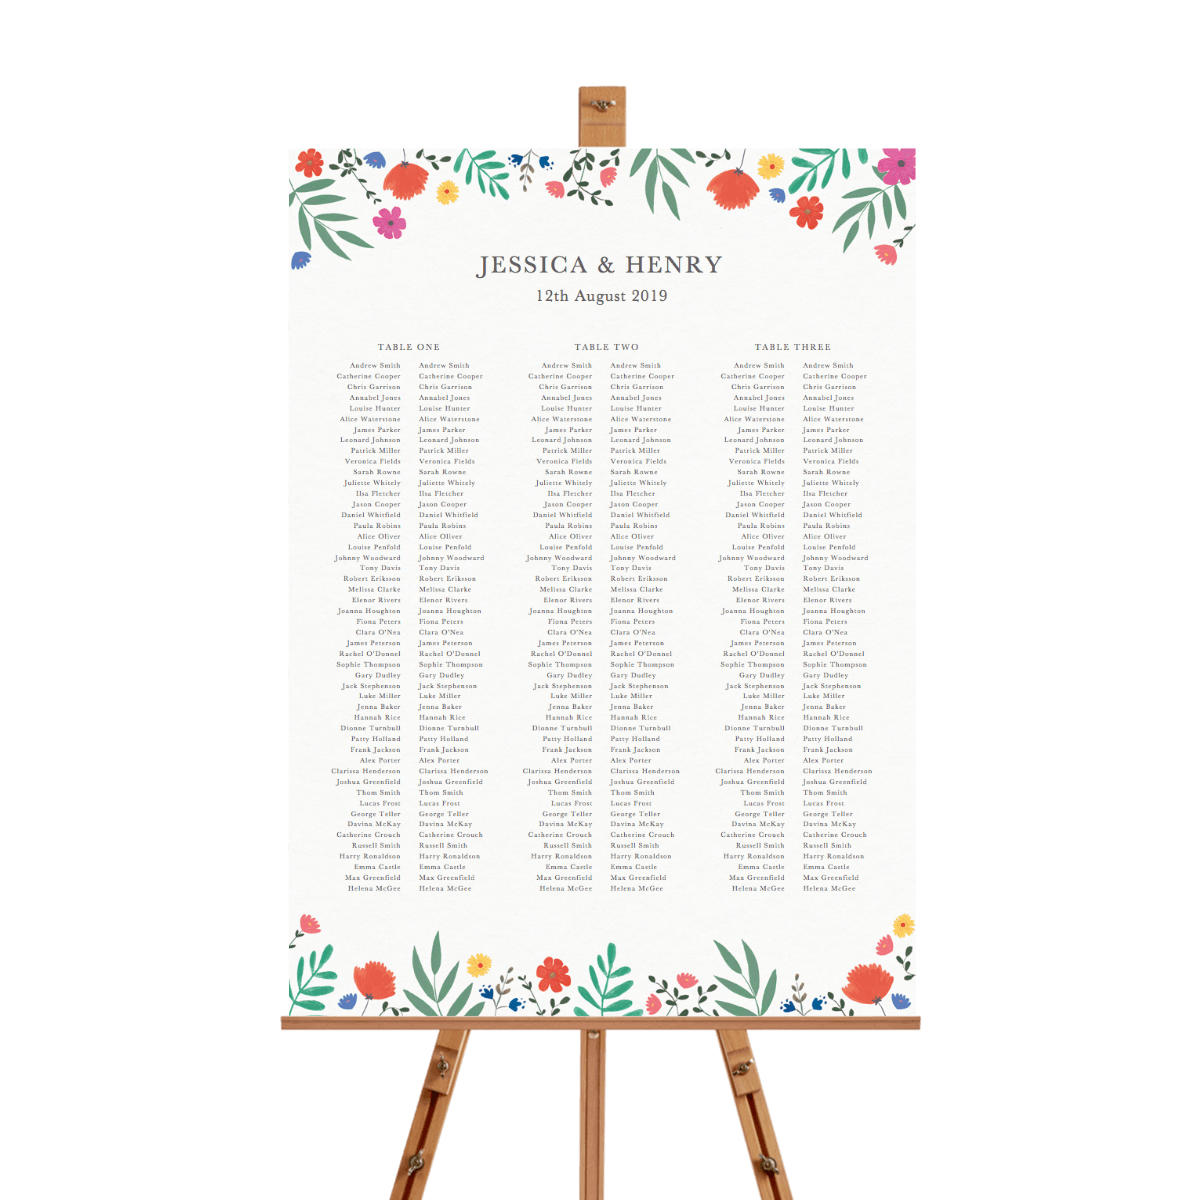 Https%3a%2f%2fwww.papier.com%2fproduct image%2f40461%2f1%2fbright wild flowers 10121 front 1530783312.png?ixlib=rb 1.1